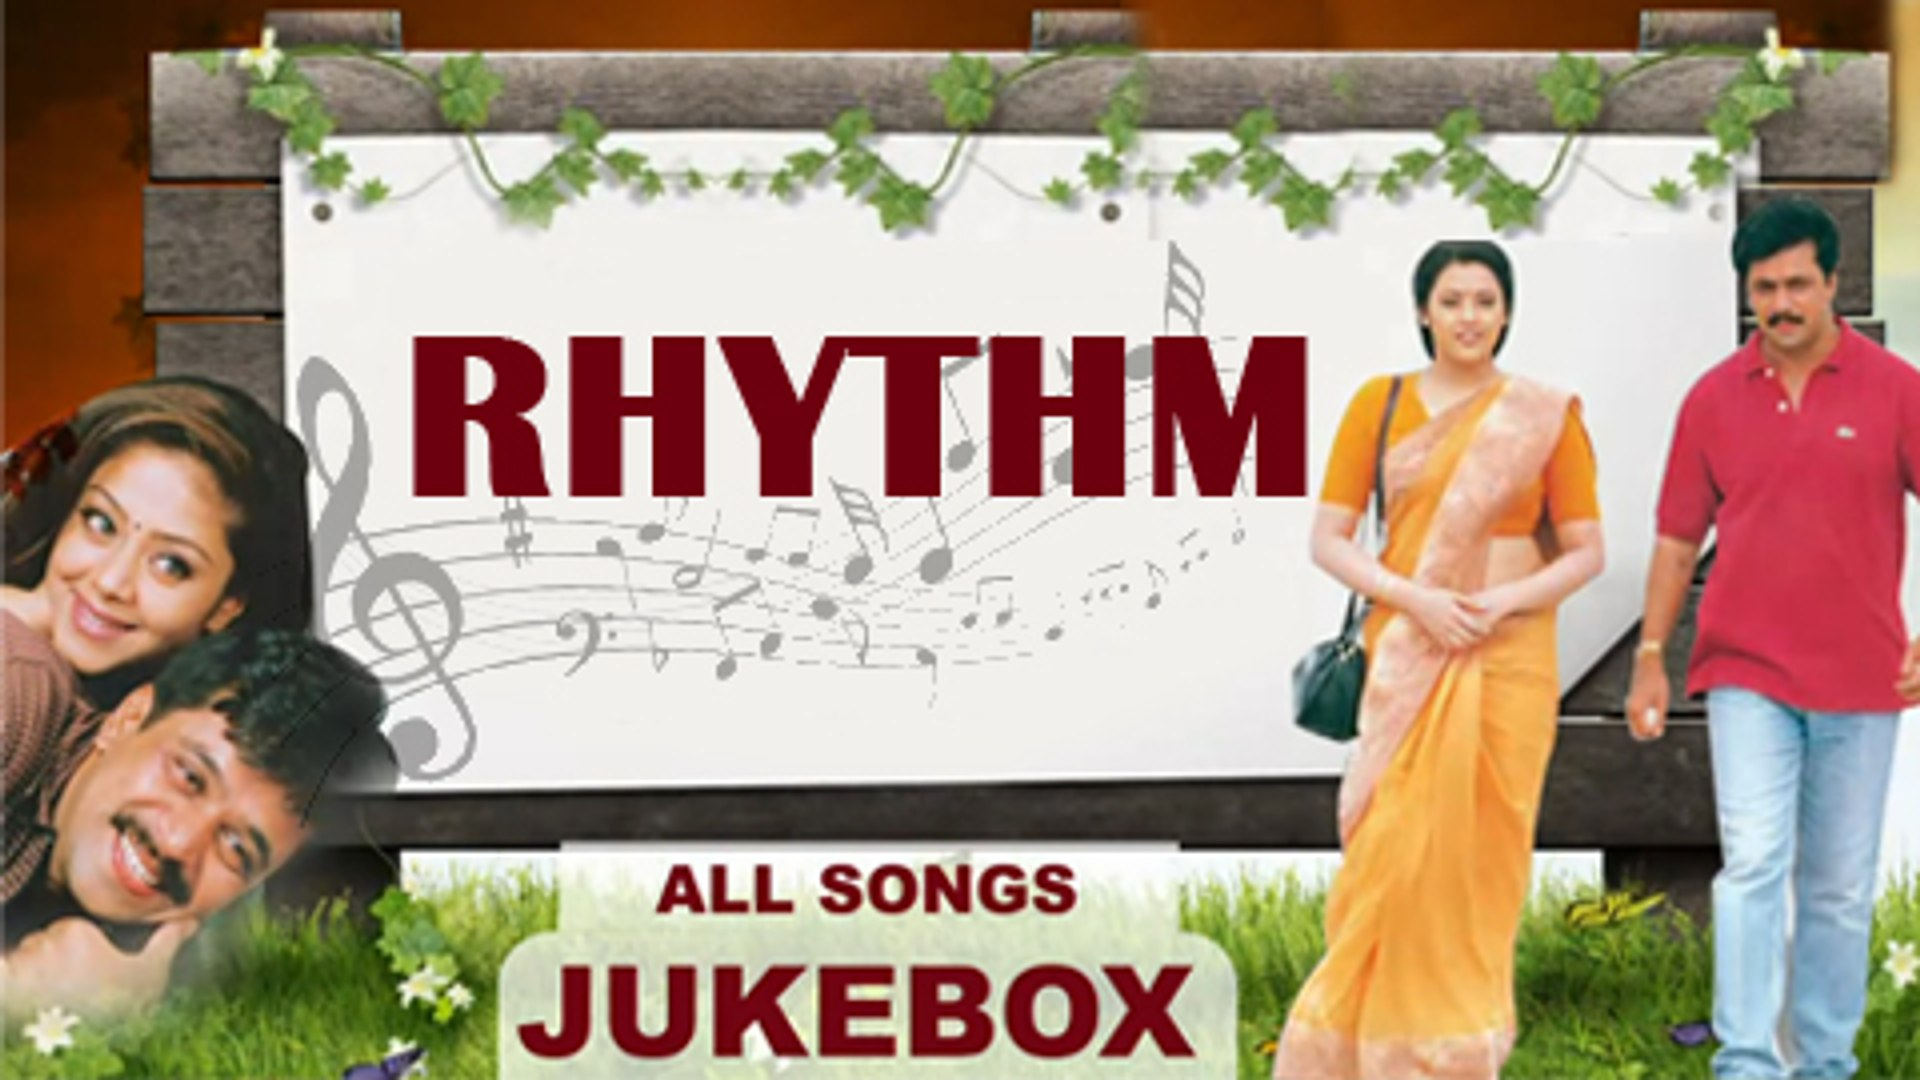 Rhythm Tamil Movie Songs Jukebox - A. R. Rahman Tamil Songs - Valentine's Day Special 2015